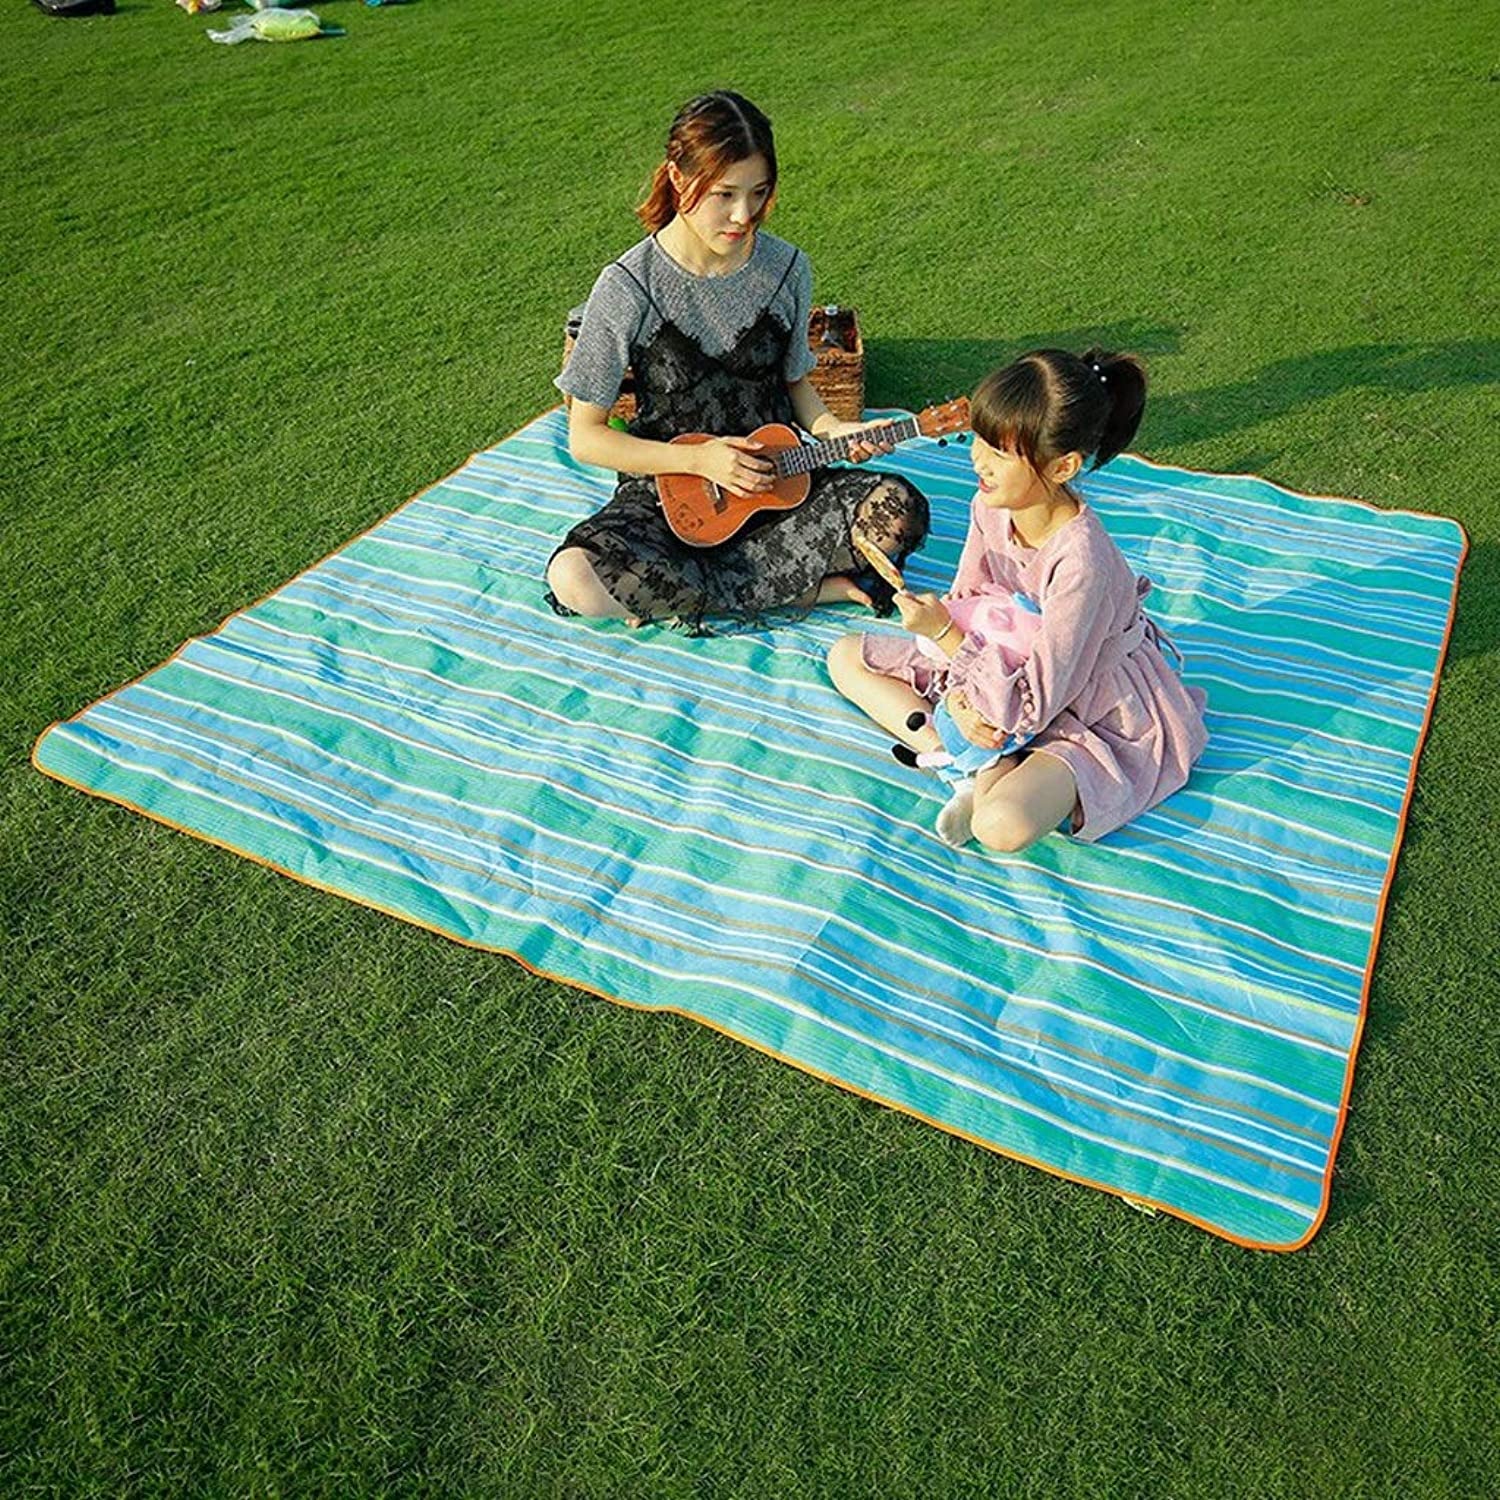 Portable Outdoor Carpet Mat, Picnic Blanket, Beach, 200 X 180 cm Sandproof Outdoor for Camping